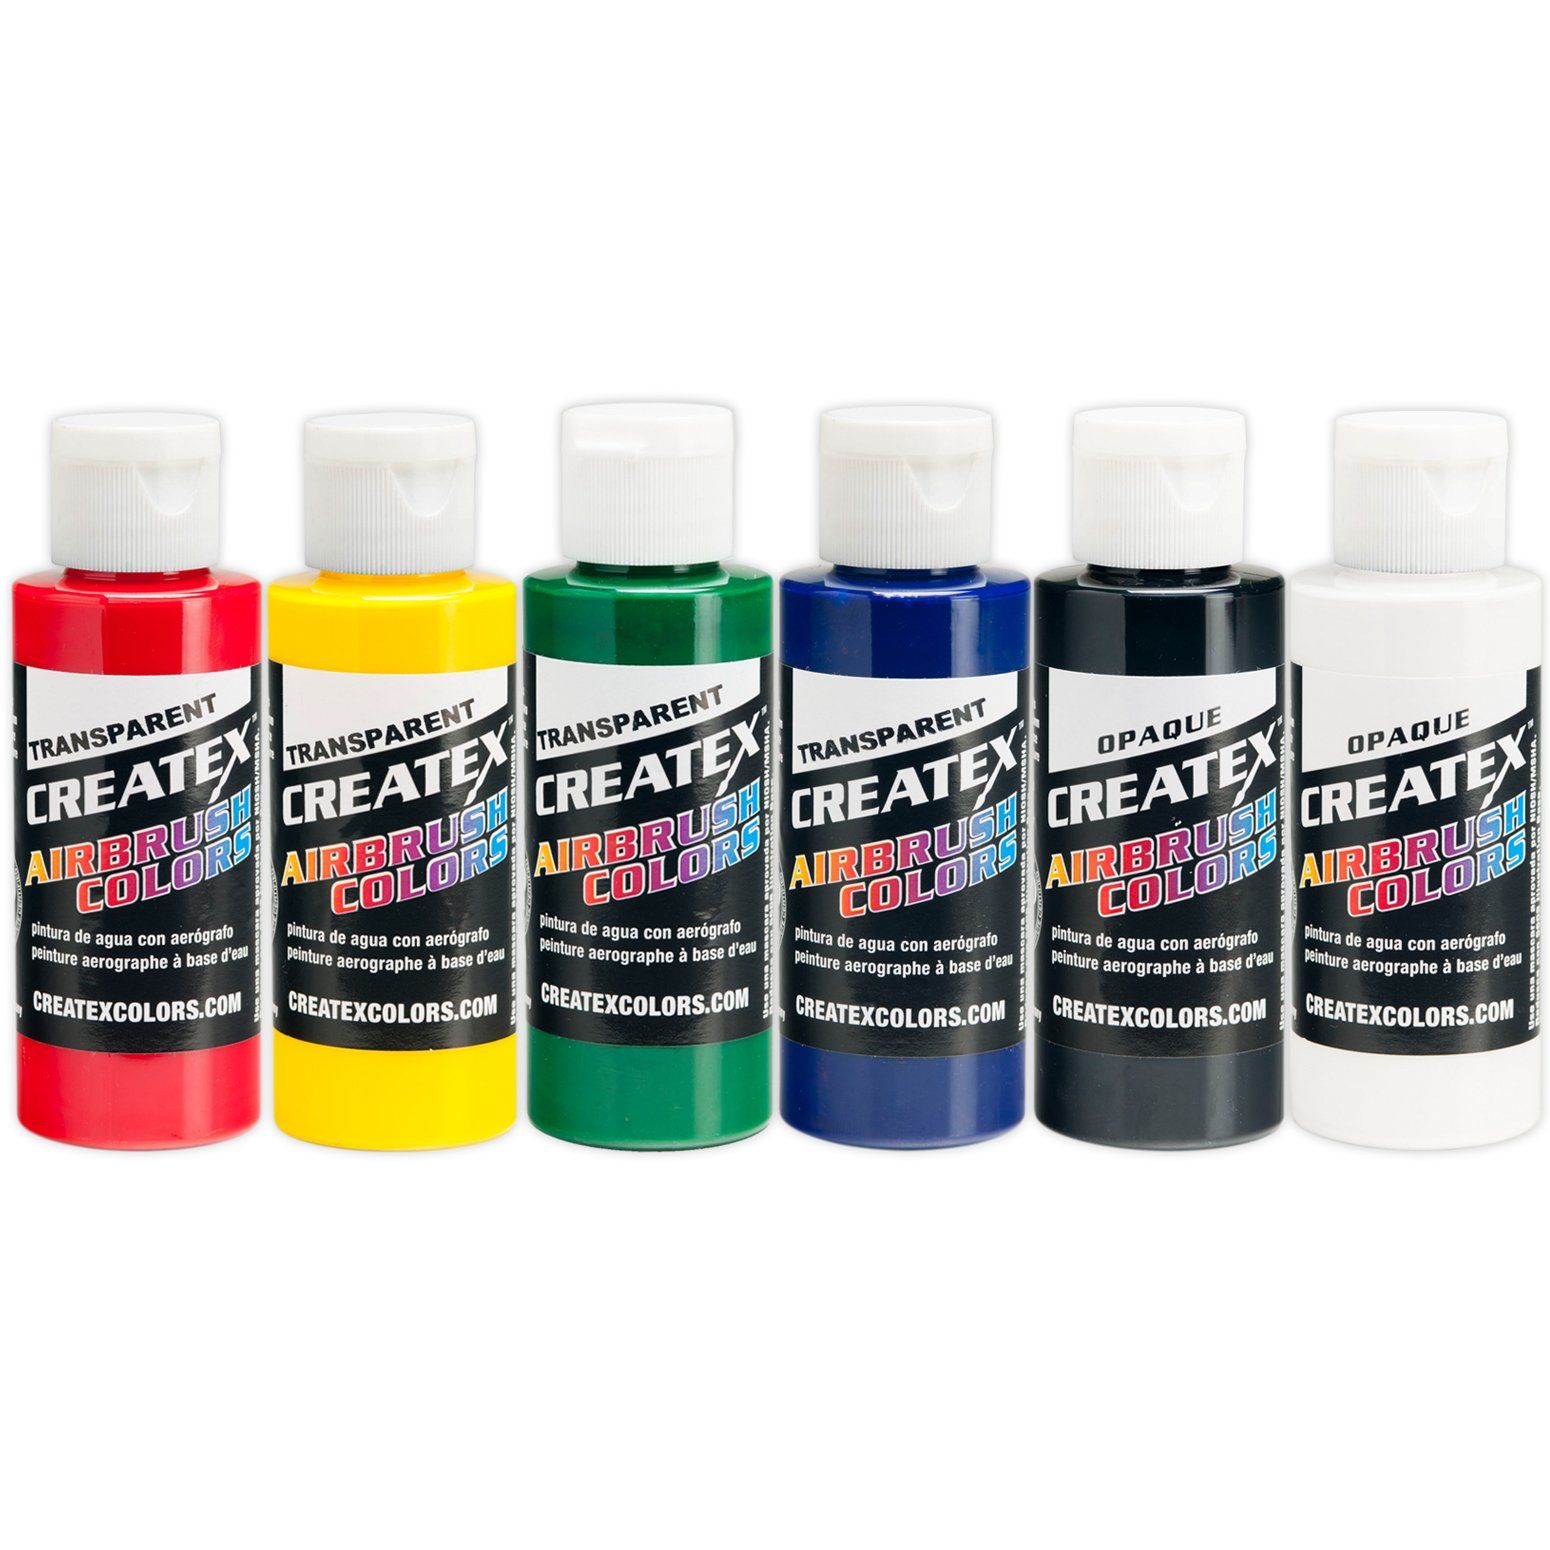 Pearl White 8 Oz Fast Deliver Createx Colors Paint For Airbrush